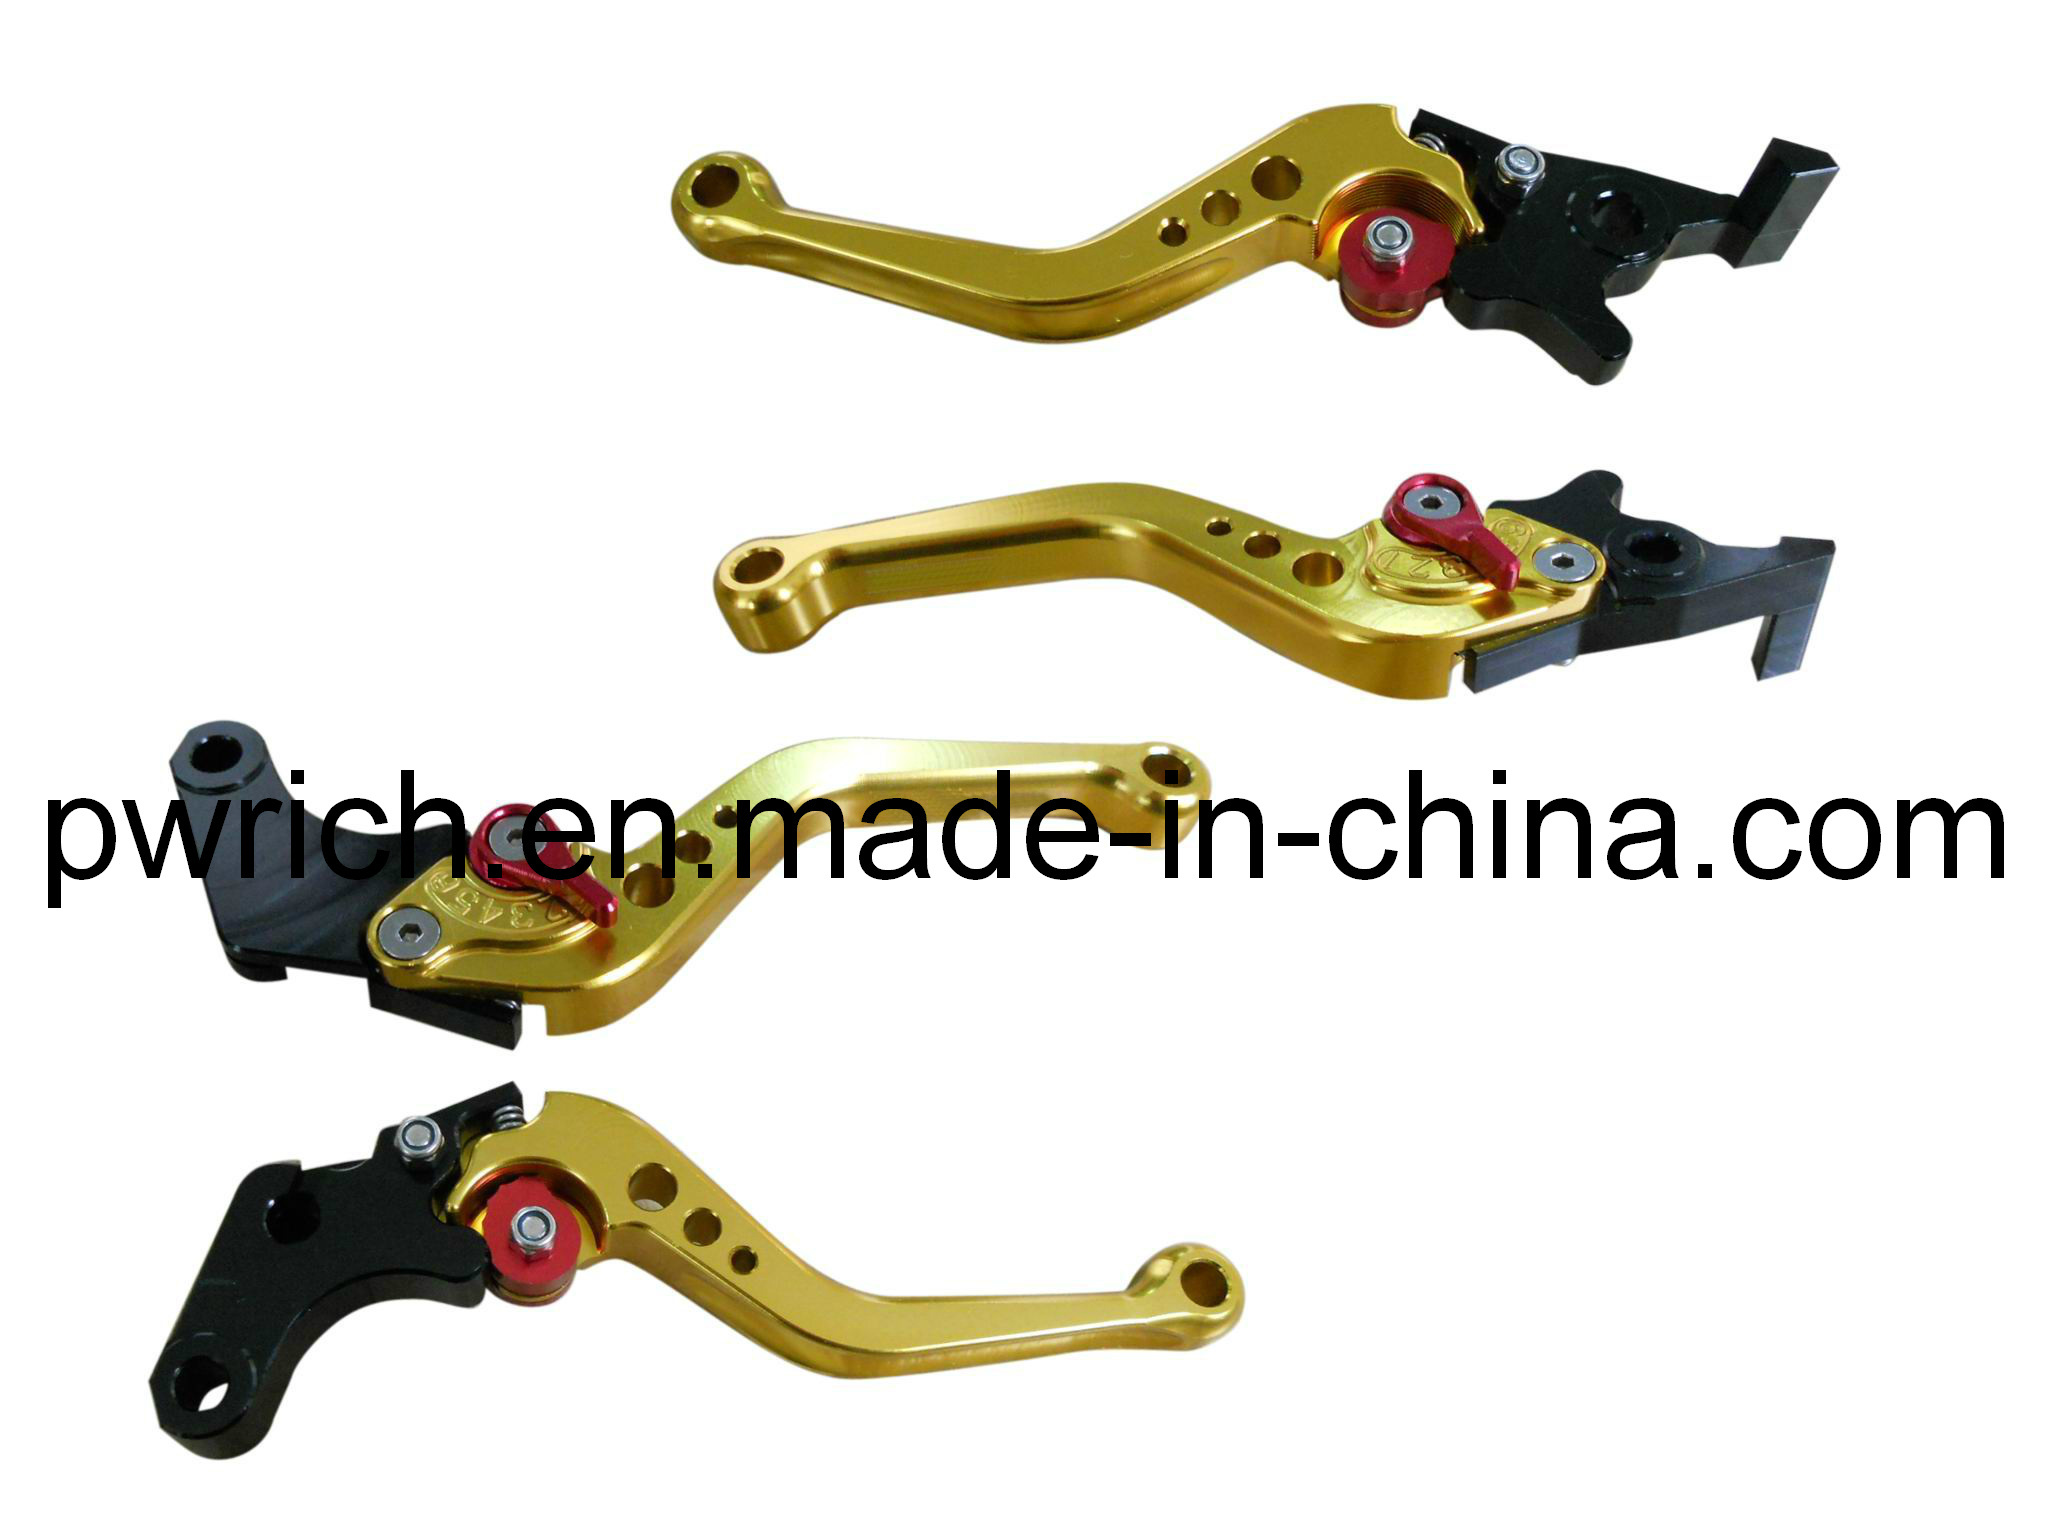 Clutch Lever Motorcycle Motorcycle Brake Clutch Lever